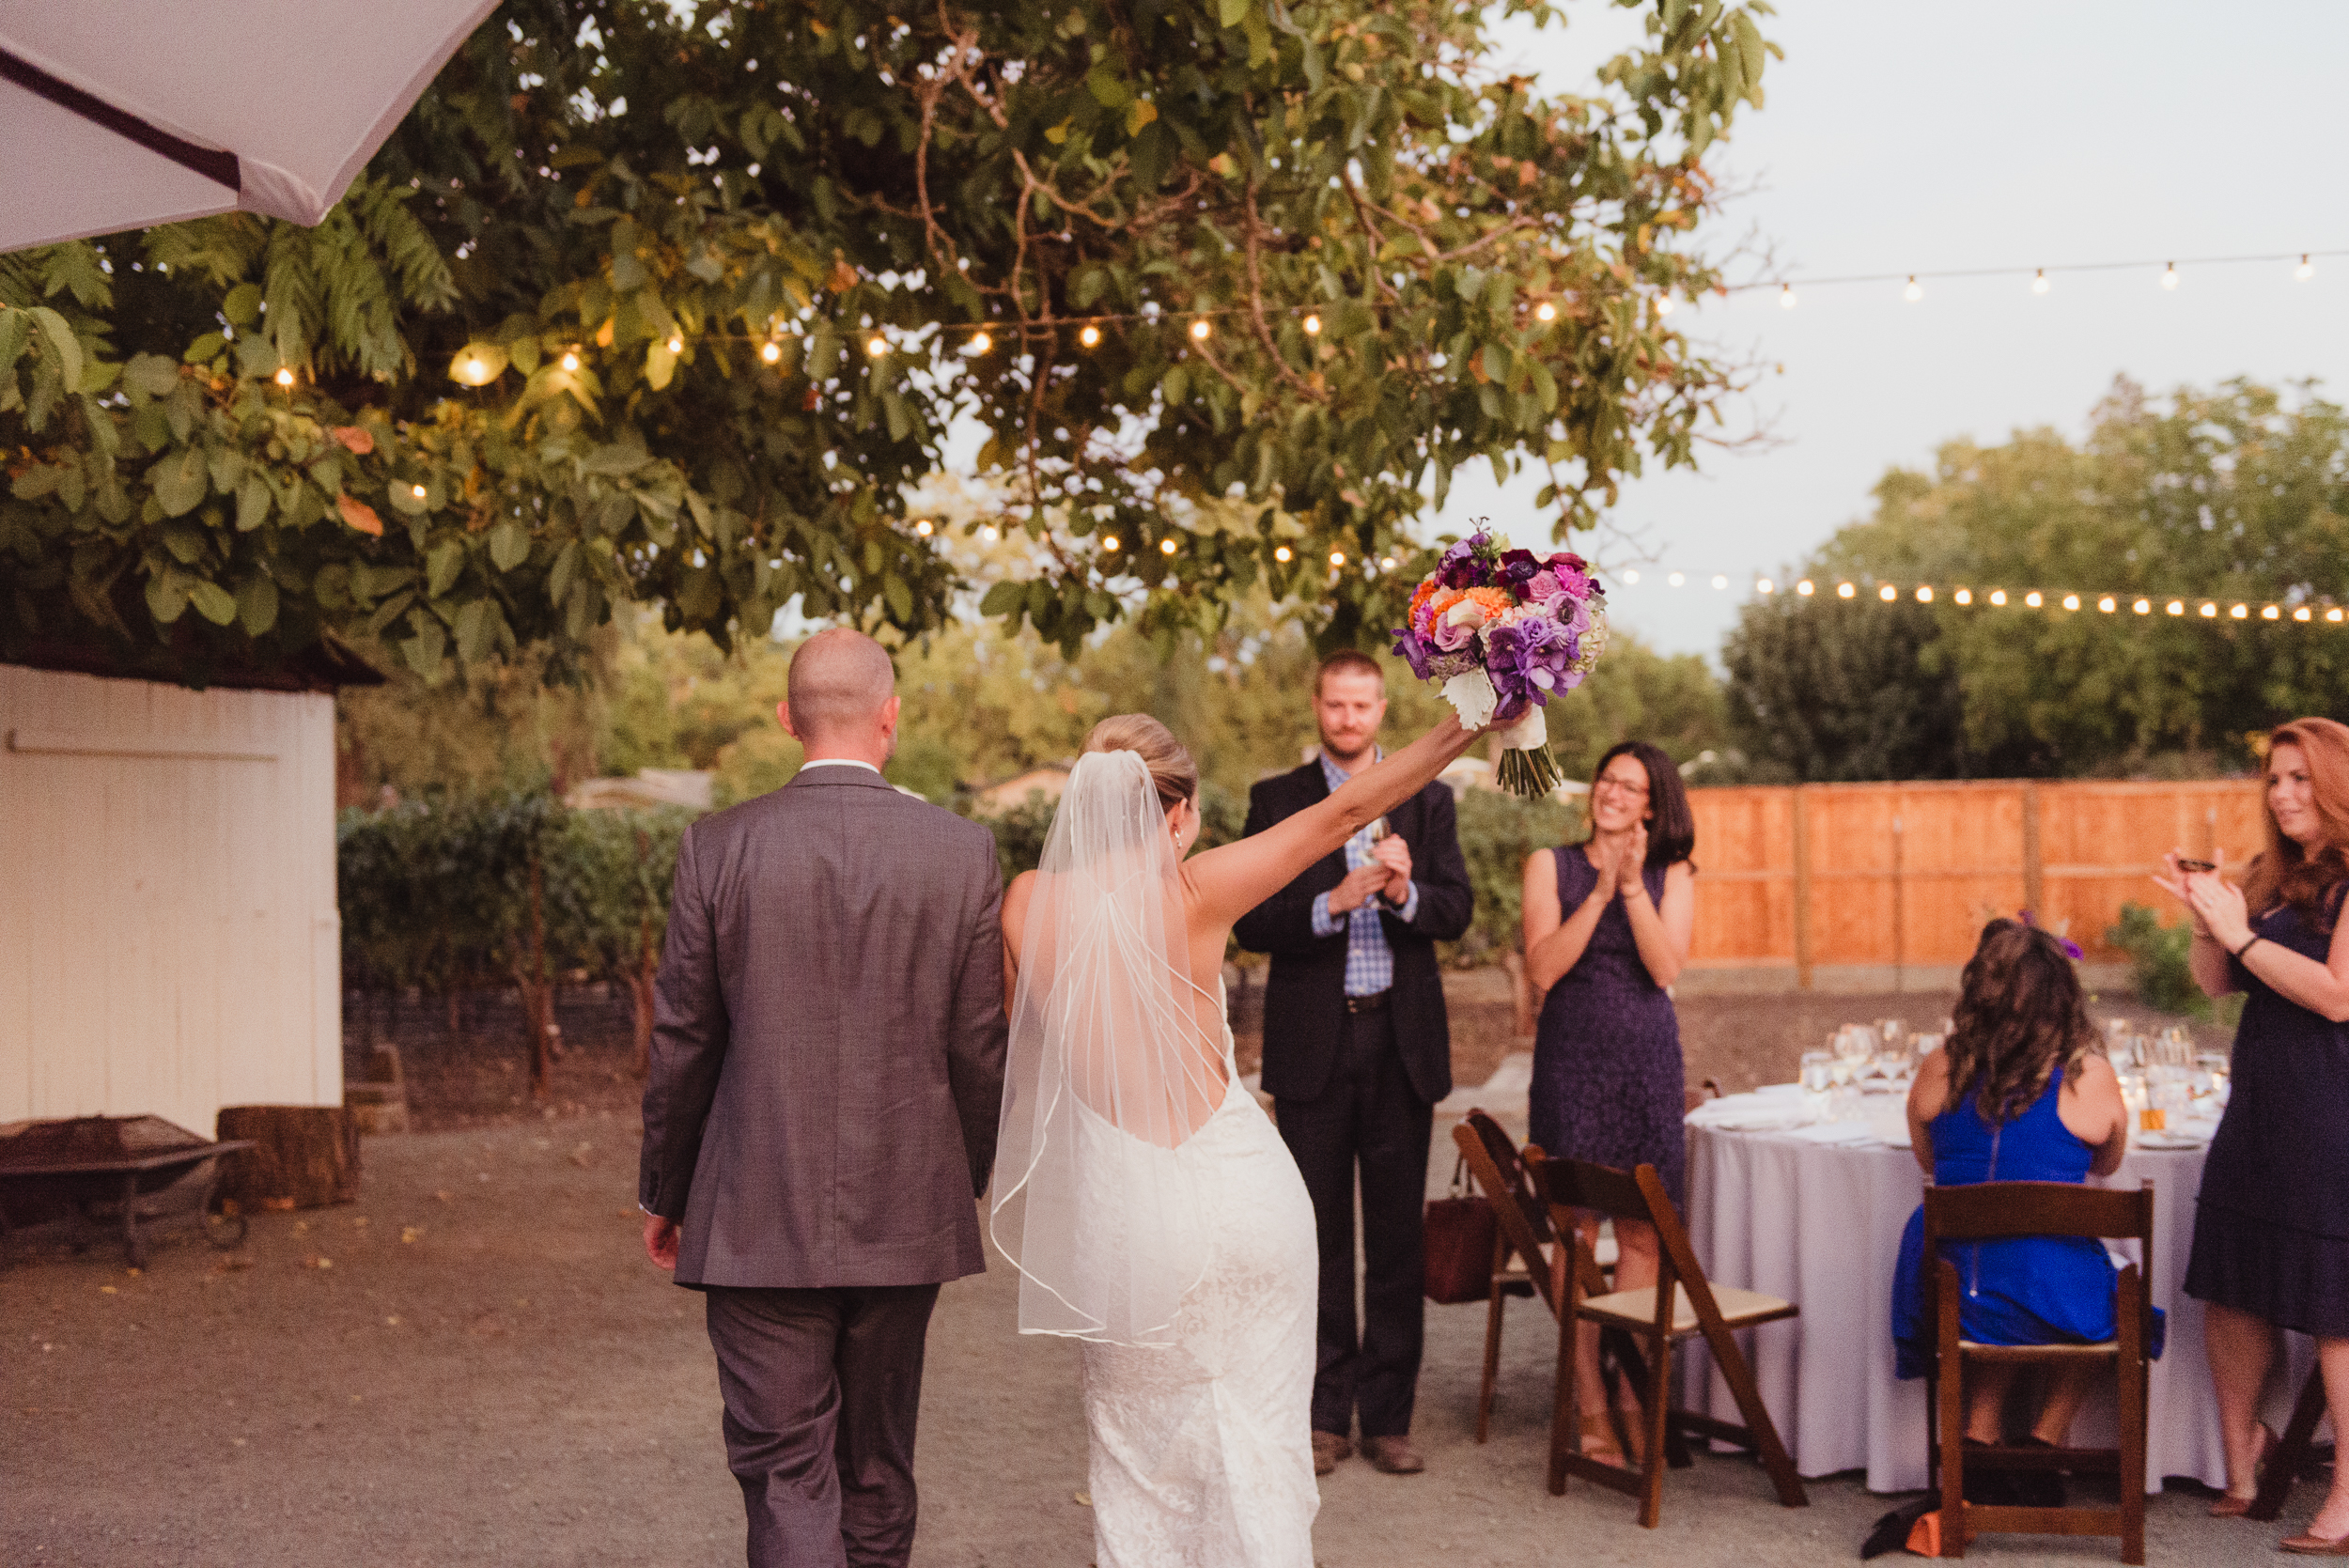 68-wine-country-calistoga-wedding-vivianchen-614.jpg